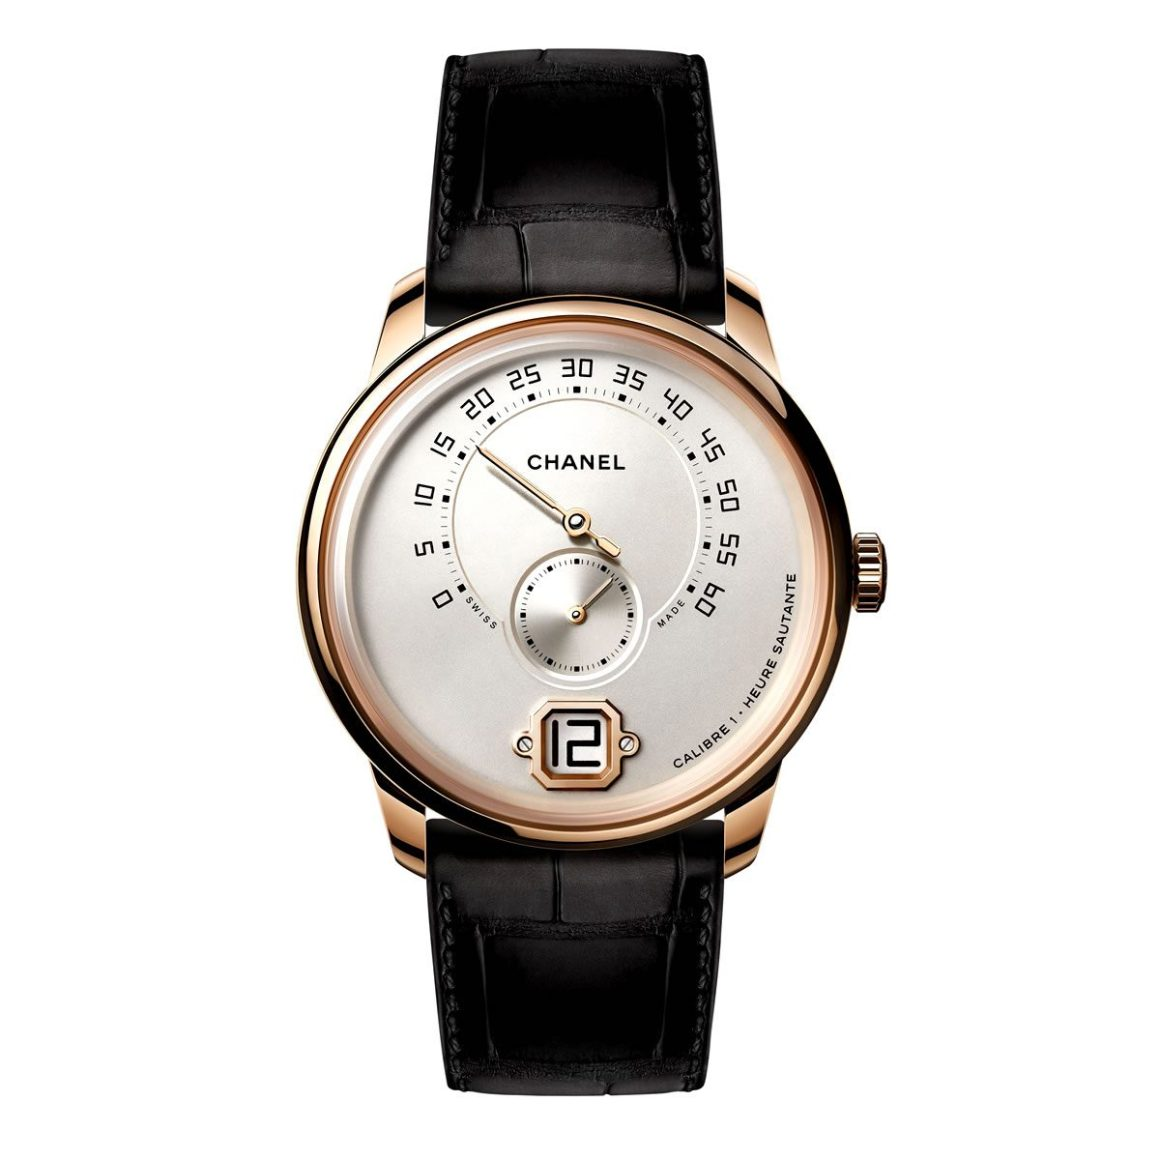 Chanel Monsieur Men's Fashion Watch